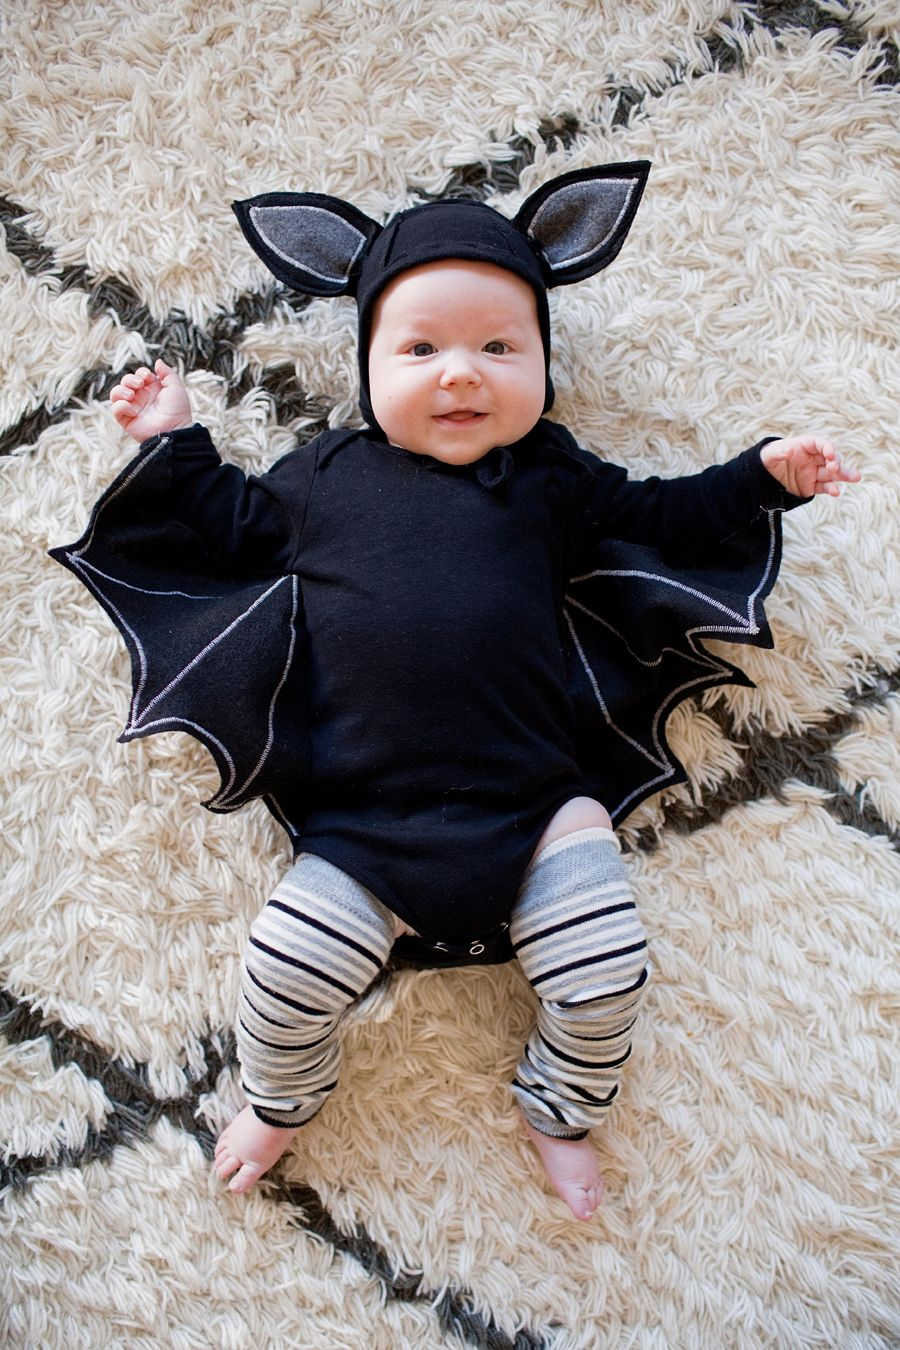 27 cute baby halloween costumes 2018 best ideas for boy girl infant toddler costumes